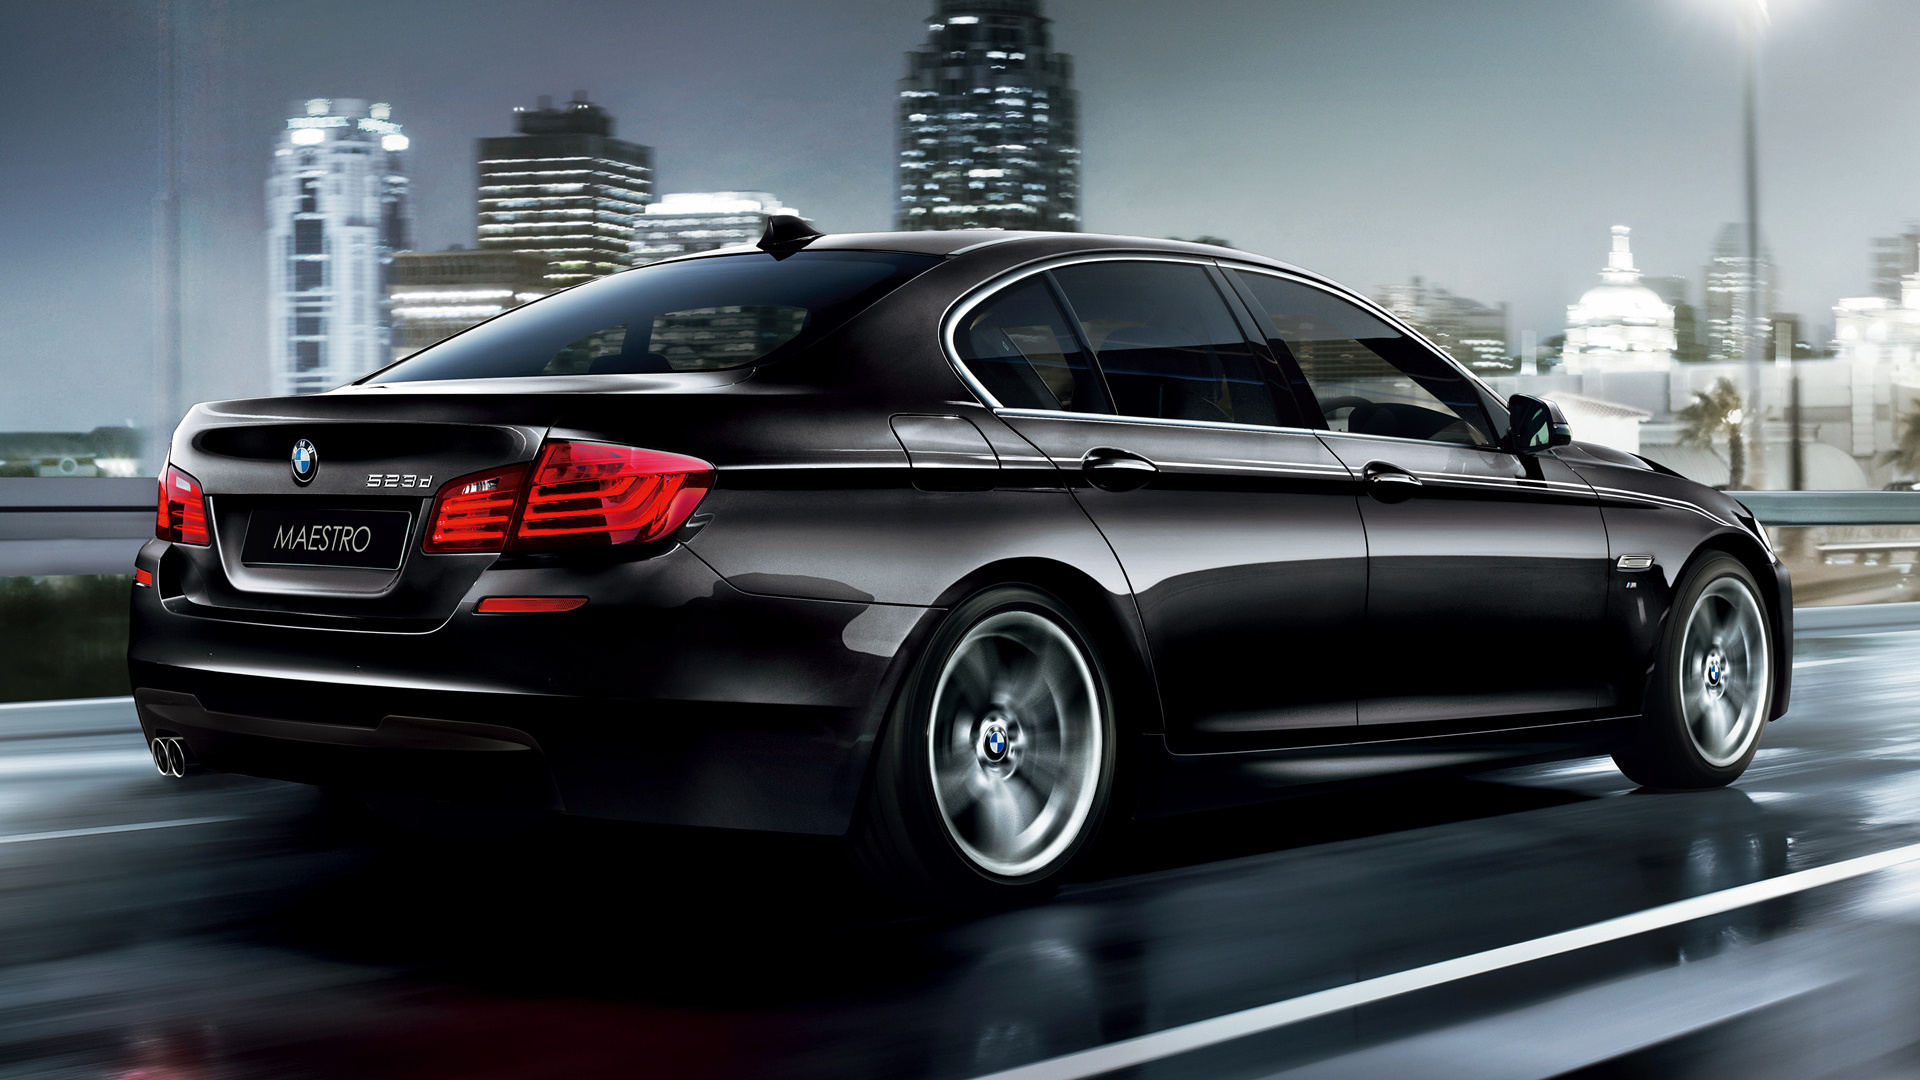 Car Desktop Wallpaper Full Hd Bmw 5 Series Maestro 2015 Jp Wallpapers And Hd Images